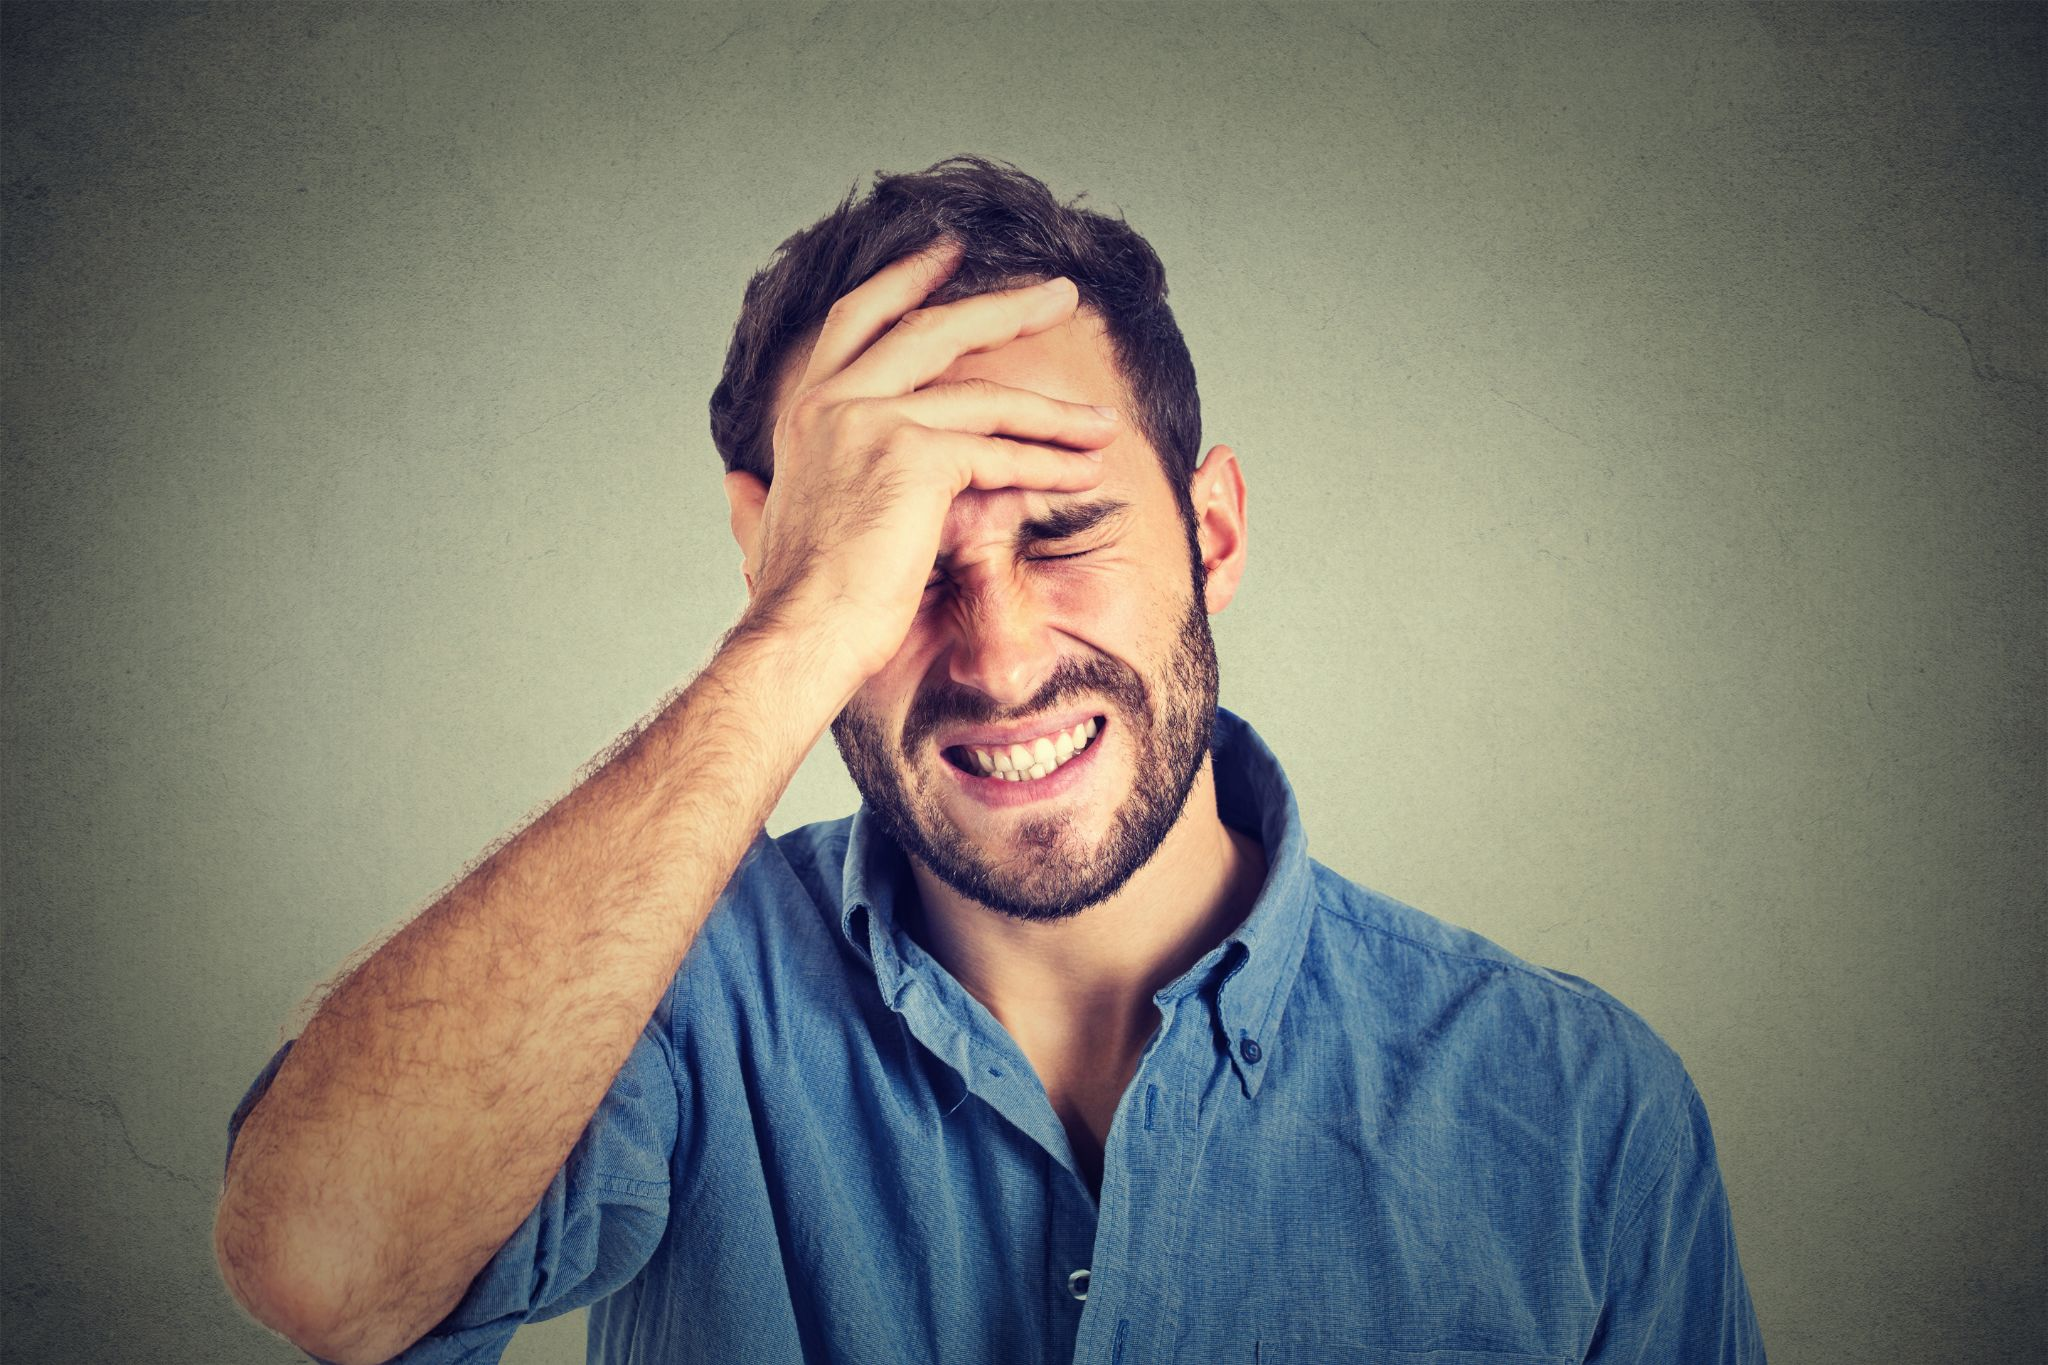 Man regretting his decision not to call a structural engineer